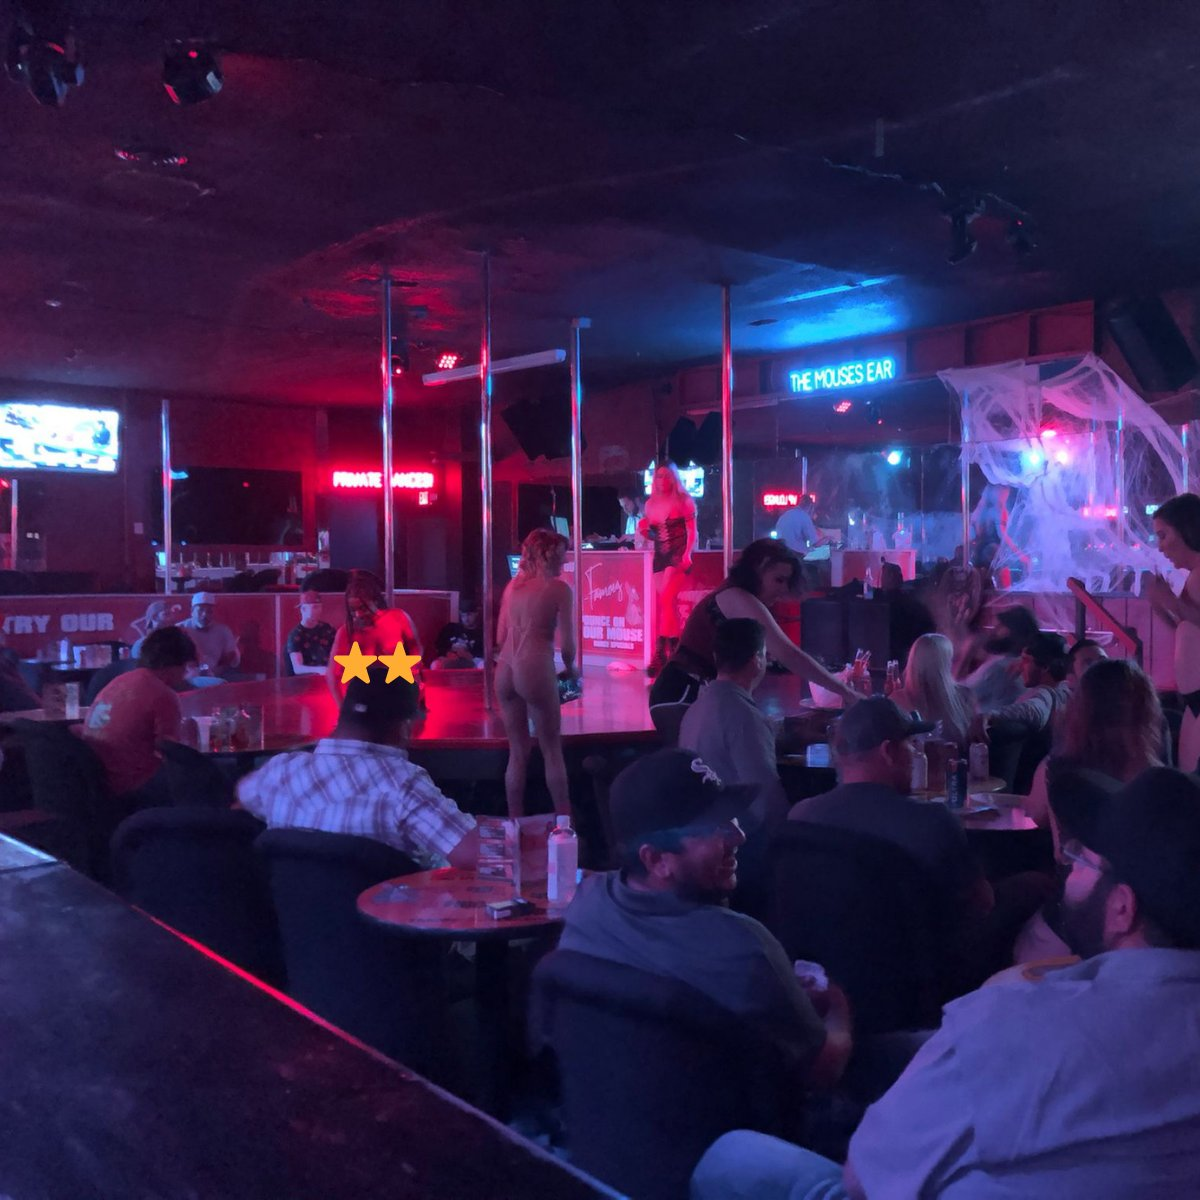 Thursday night party is ON! You still have time to get down here and have the most fun within 100 miles! We're the local hot spot for a reason, and we are happy to show you why! . . . #ThirstyThursday #FootballThursday #Fun #Party #MousesEar #JohnsonCity #StripClub